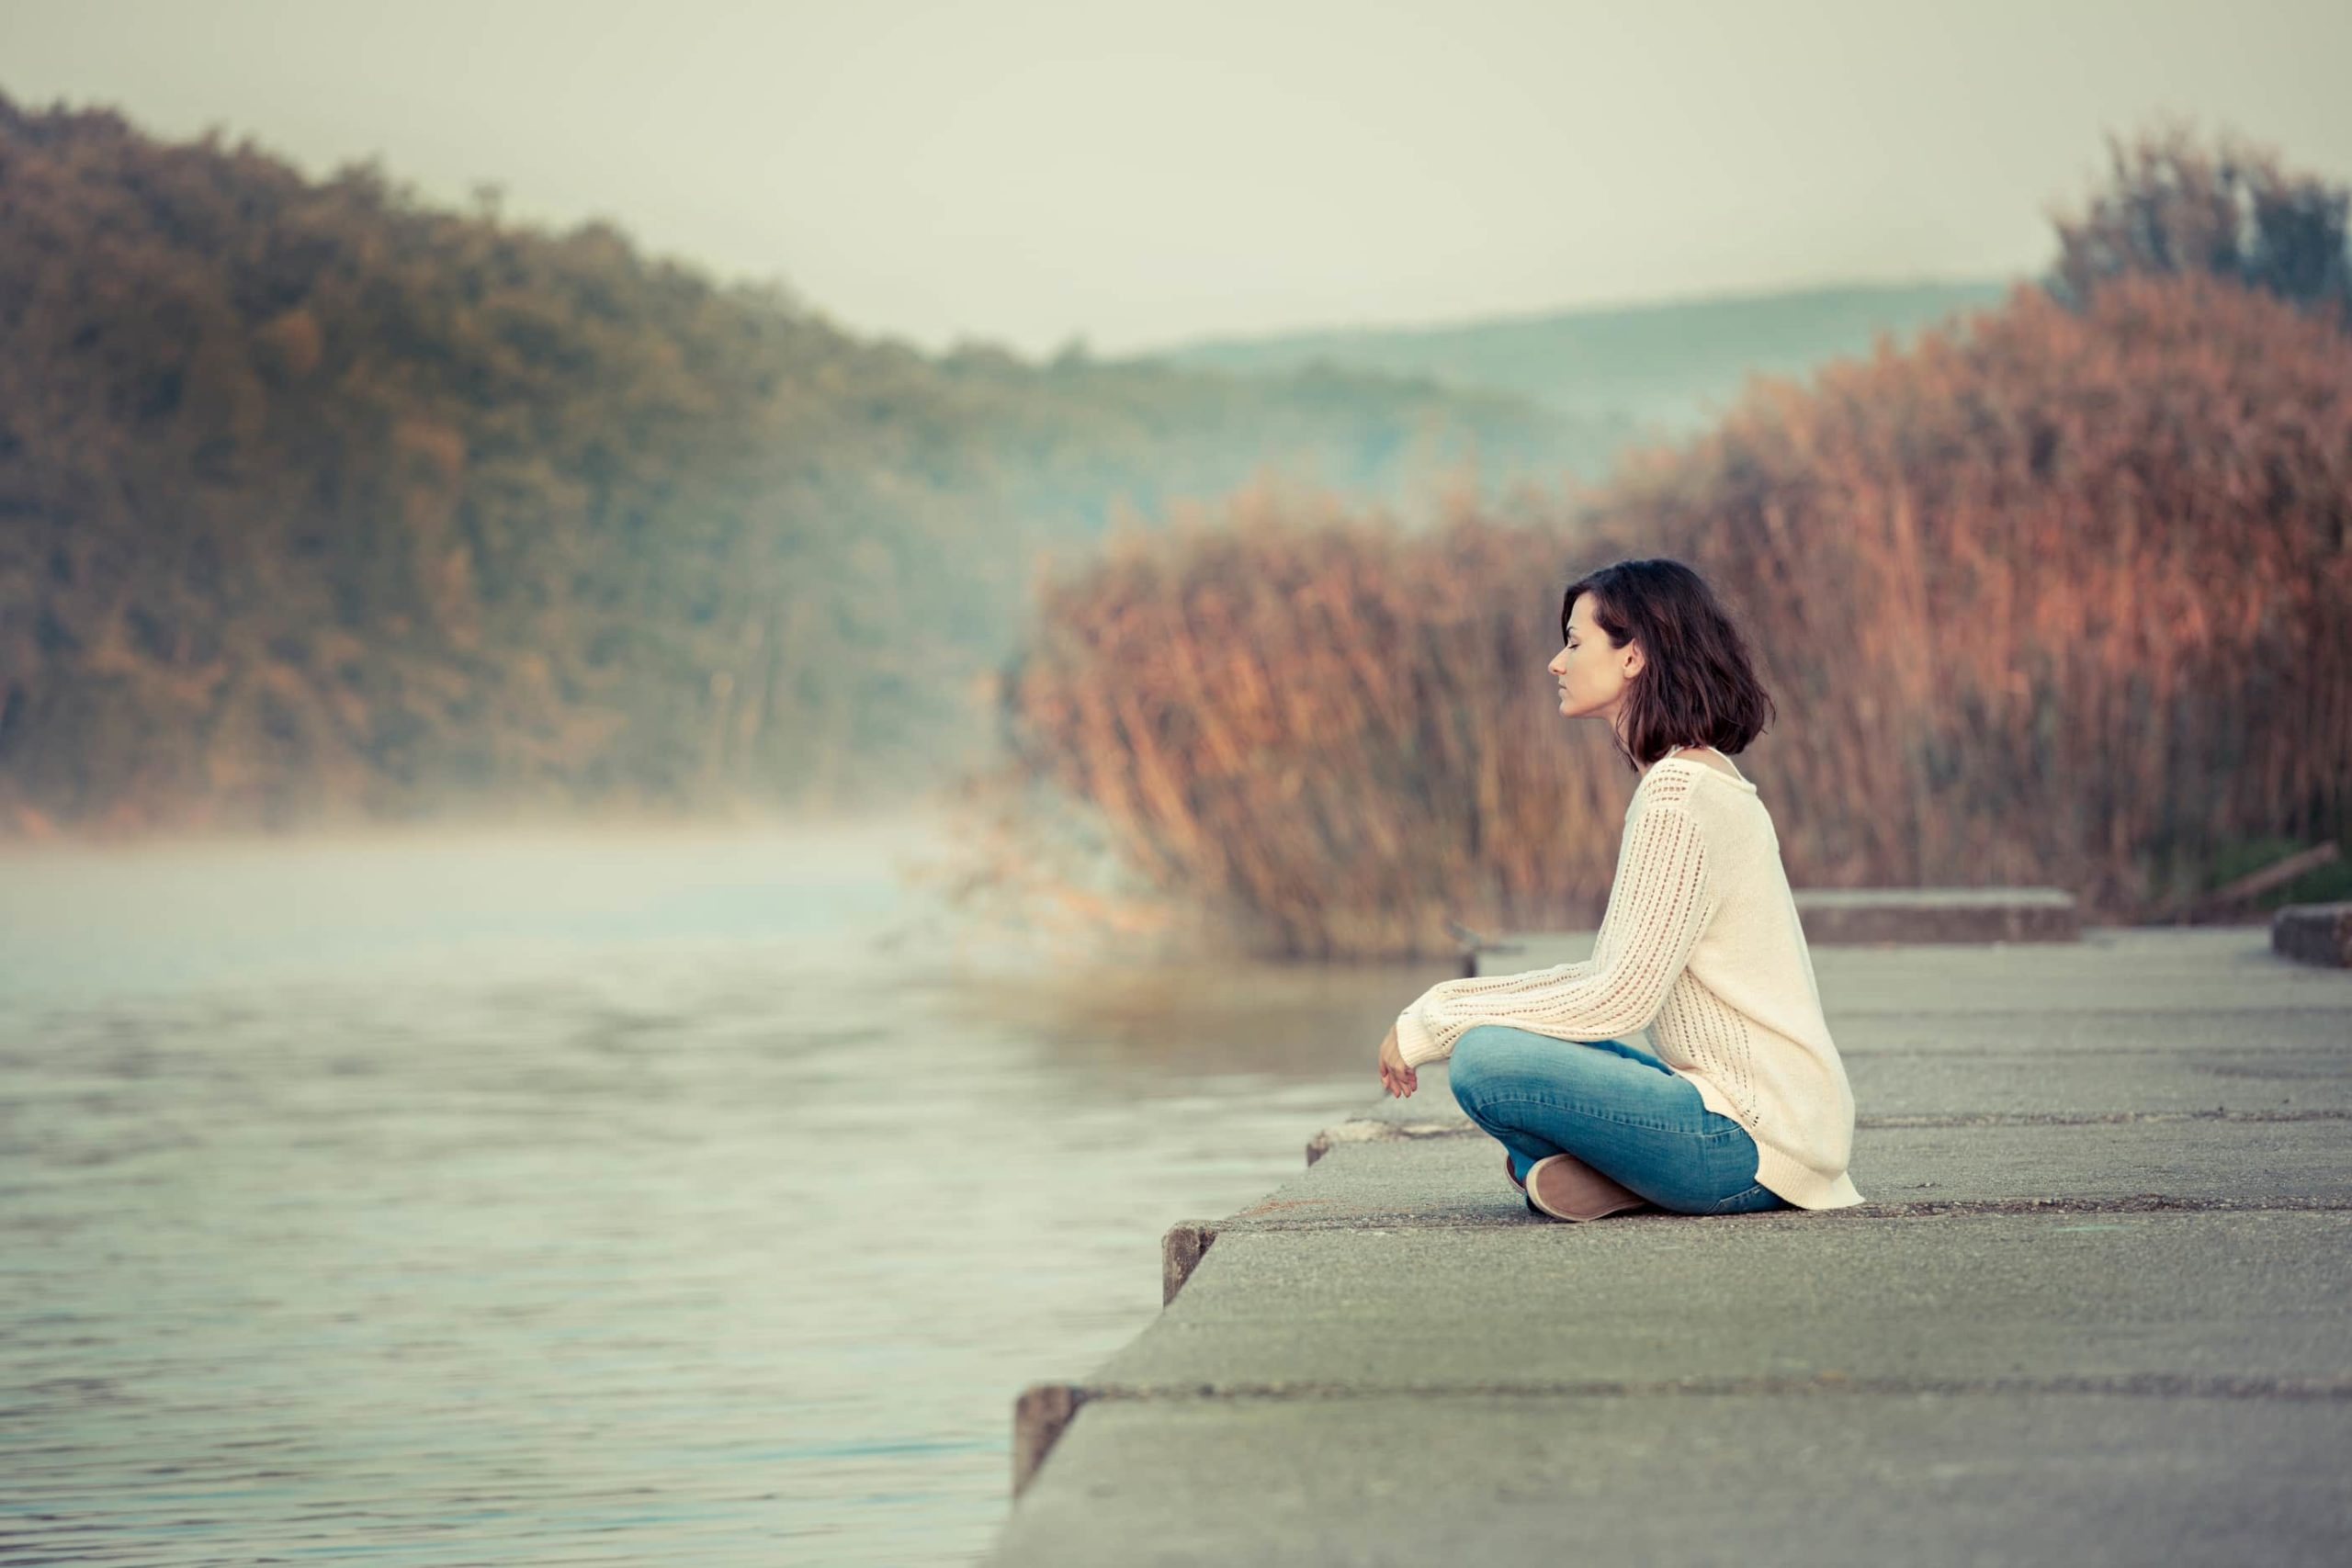 What Is The Fear Of Being Alone?